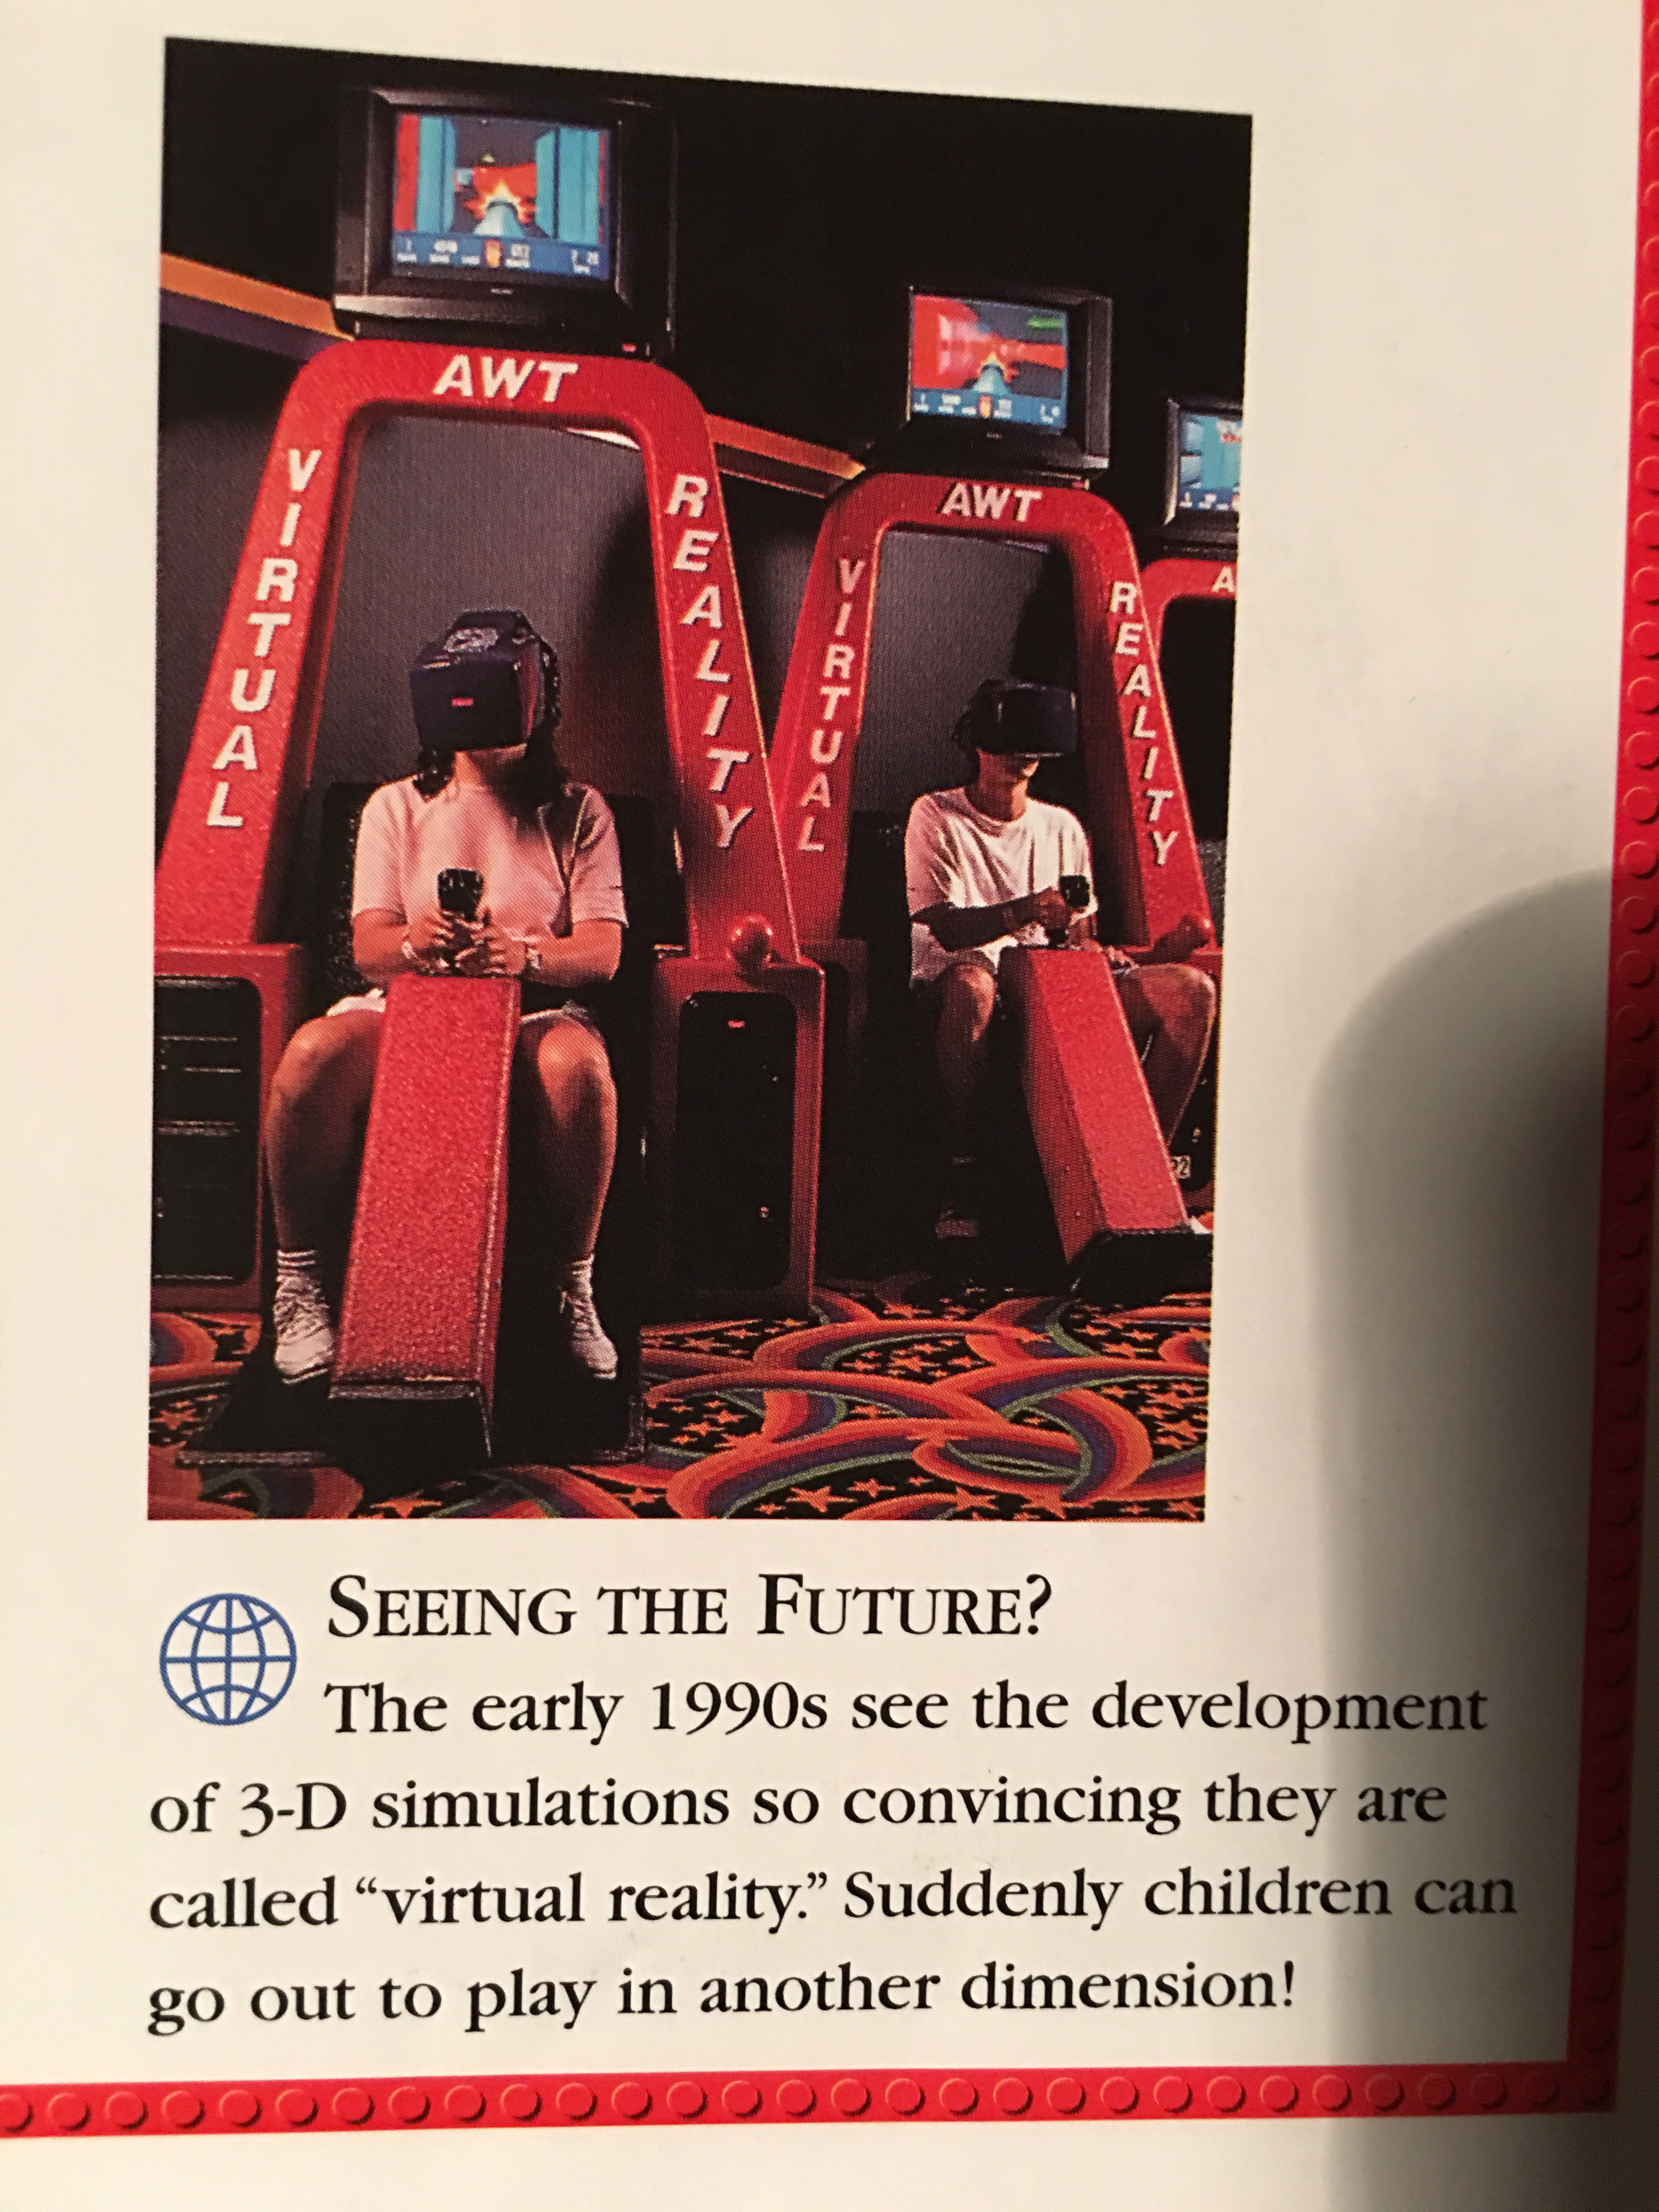 "A picture from a book about Lego shows two kids sitting in oversized arcade cabinets wearing huge VR goggles. The caption reads ""Seeing the future? The early 1990s see the development of 3-D simulations so convincing they are called 'virtual reality'. Suddenly children can go out to play in another dimension!"""